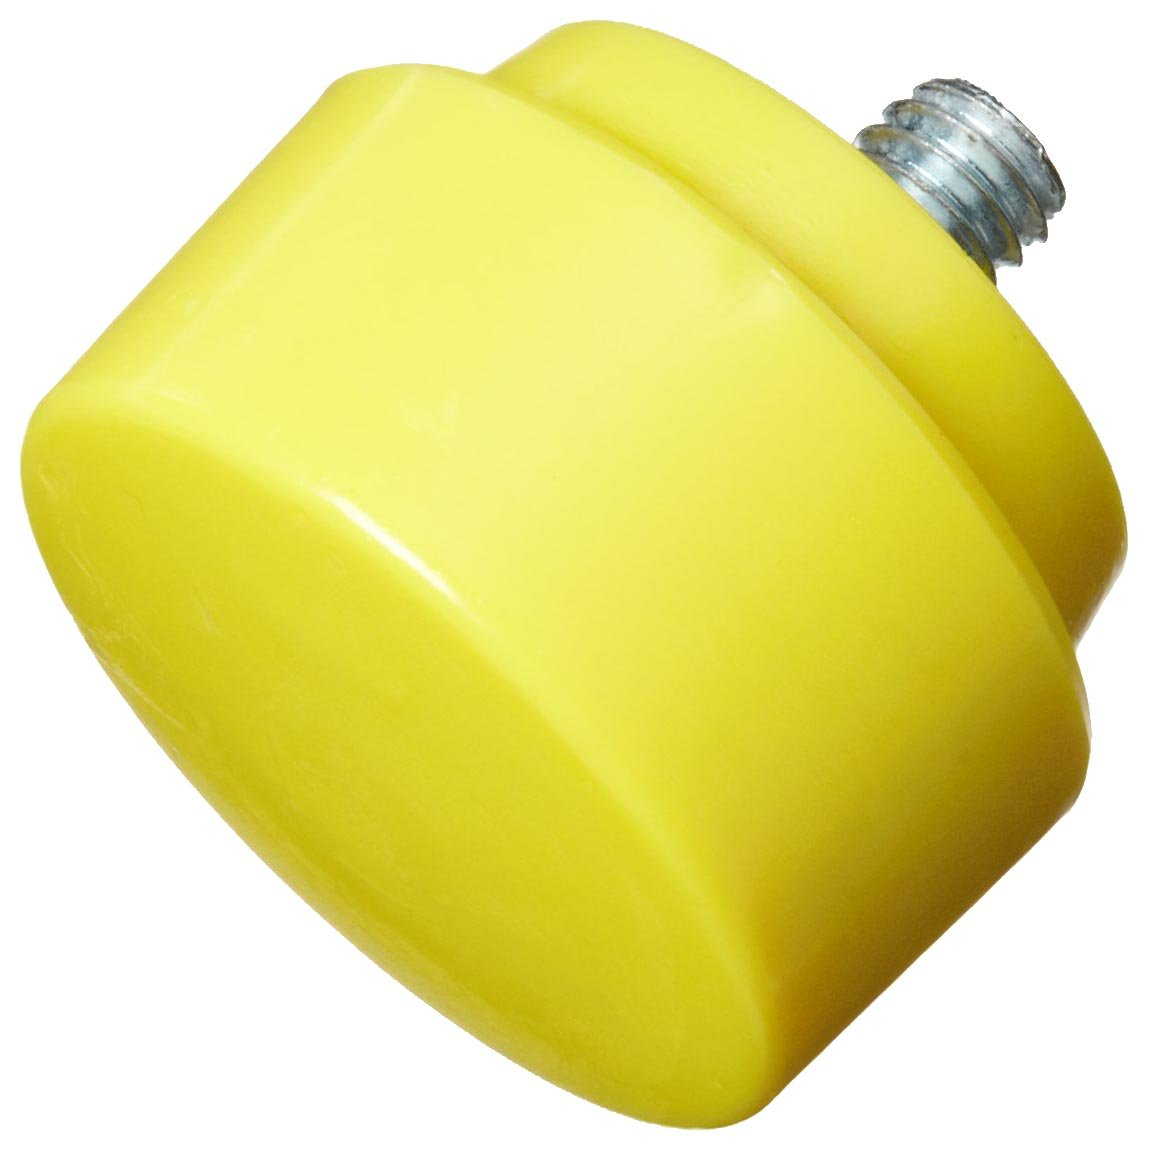 1.5-Inch Diameter Yellow NUPLA 15159 Extra Hard Face QC Replaceable Tip for Impax Dead Blow and Quick Change Hammers